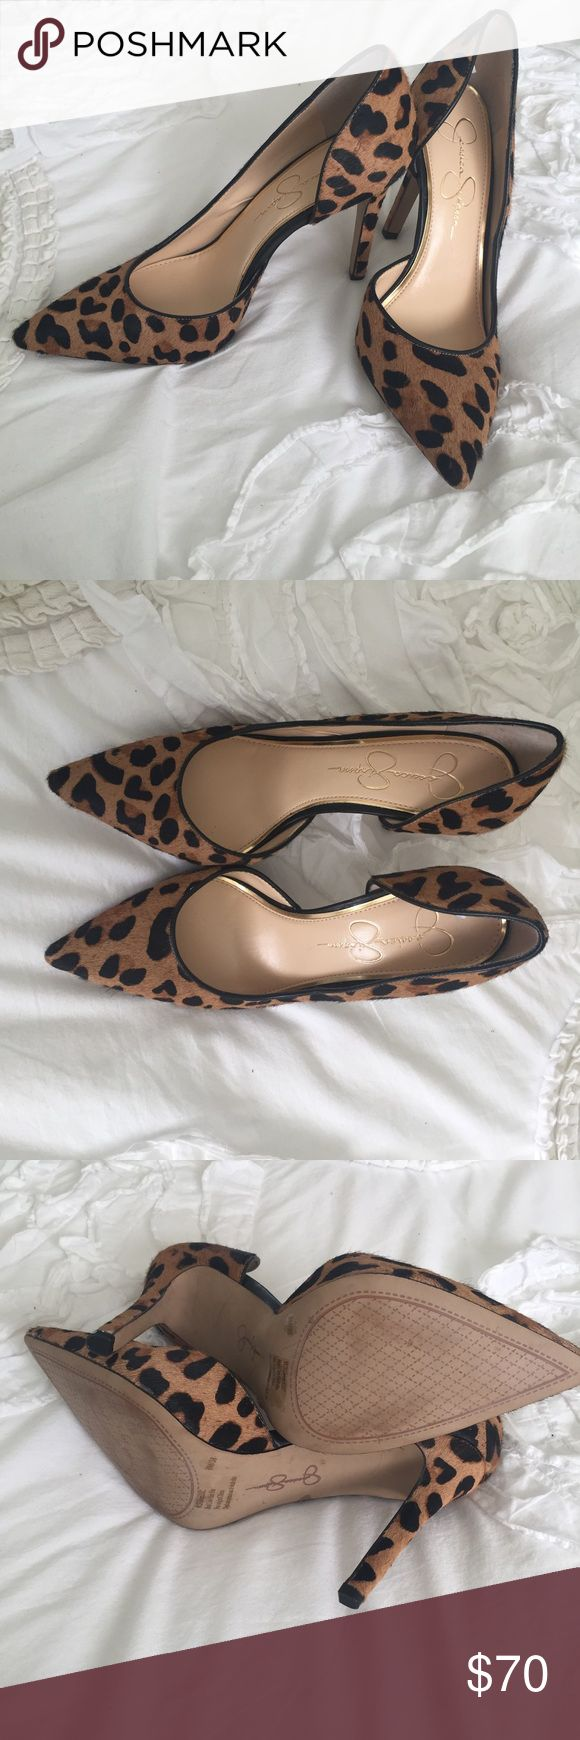 """Jessica Simpson stiletto cheetah print size 8 heel Jessica Simpson single-sole stiletto in cheetah print. Genuine calf hair upper and synthetic lining and sole. 4"""" heel. Very lightly worn. Once. Jessica Simpson Shoes Heels"""